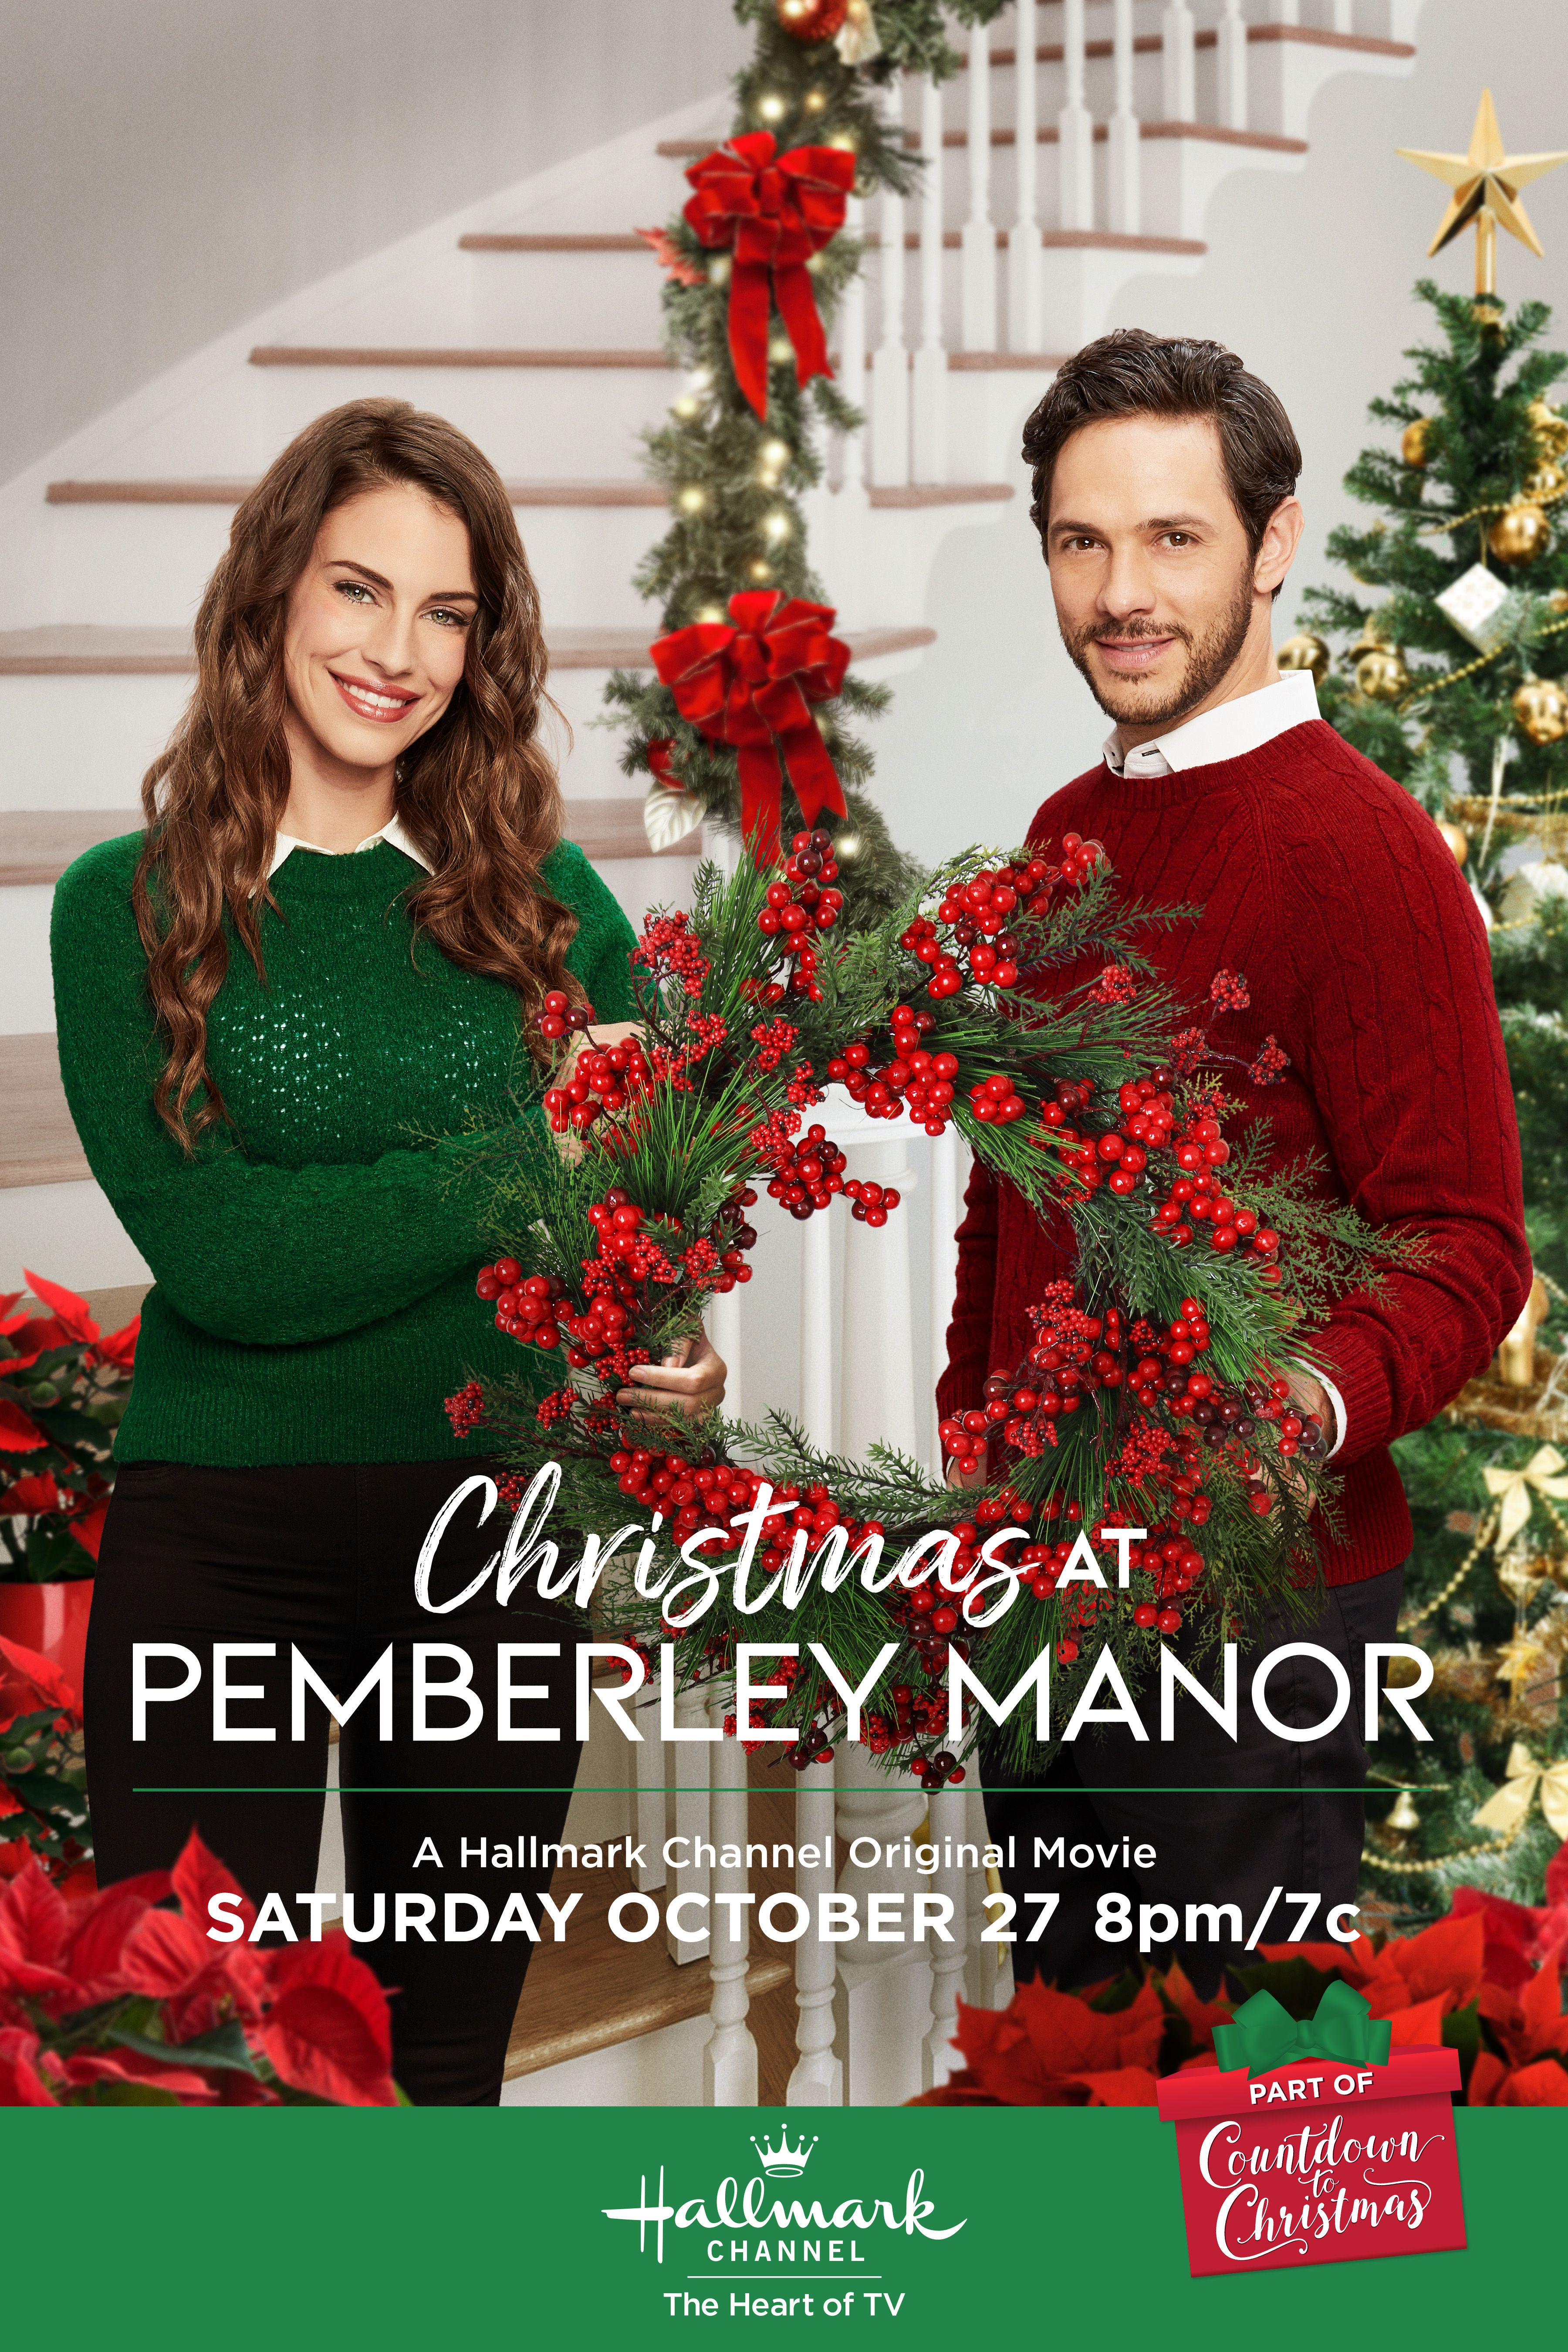 Jessica Lowndes And Michael Rady Star In Christmas At Pemberley Manor The First Hallmark Channel Christmas Movies Hallmark Christmas Movies Christmas Movies